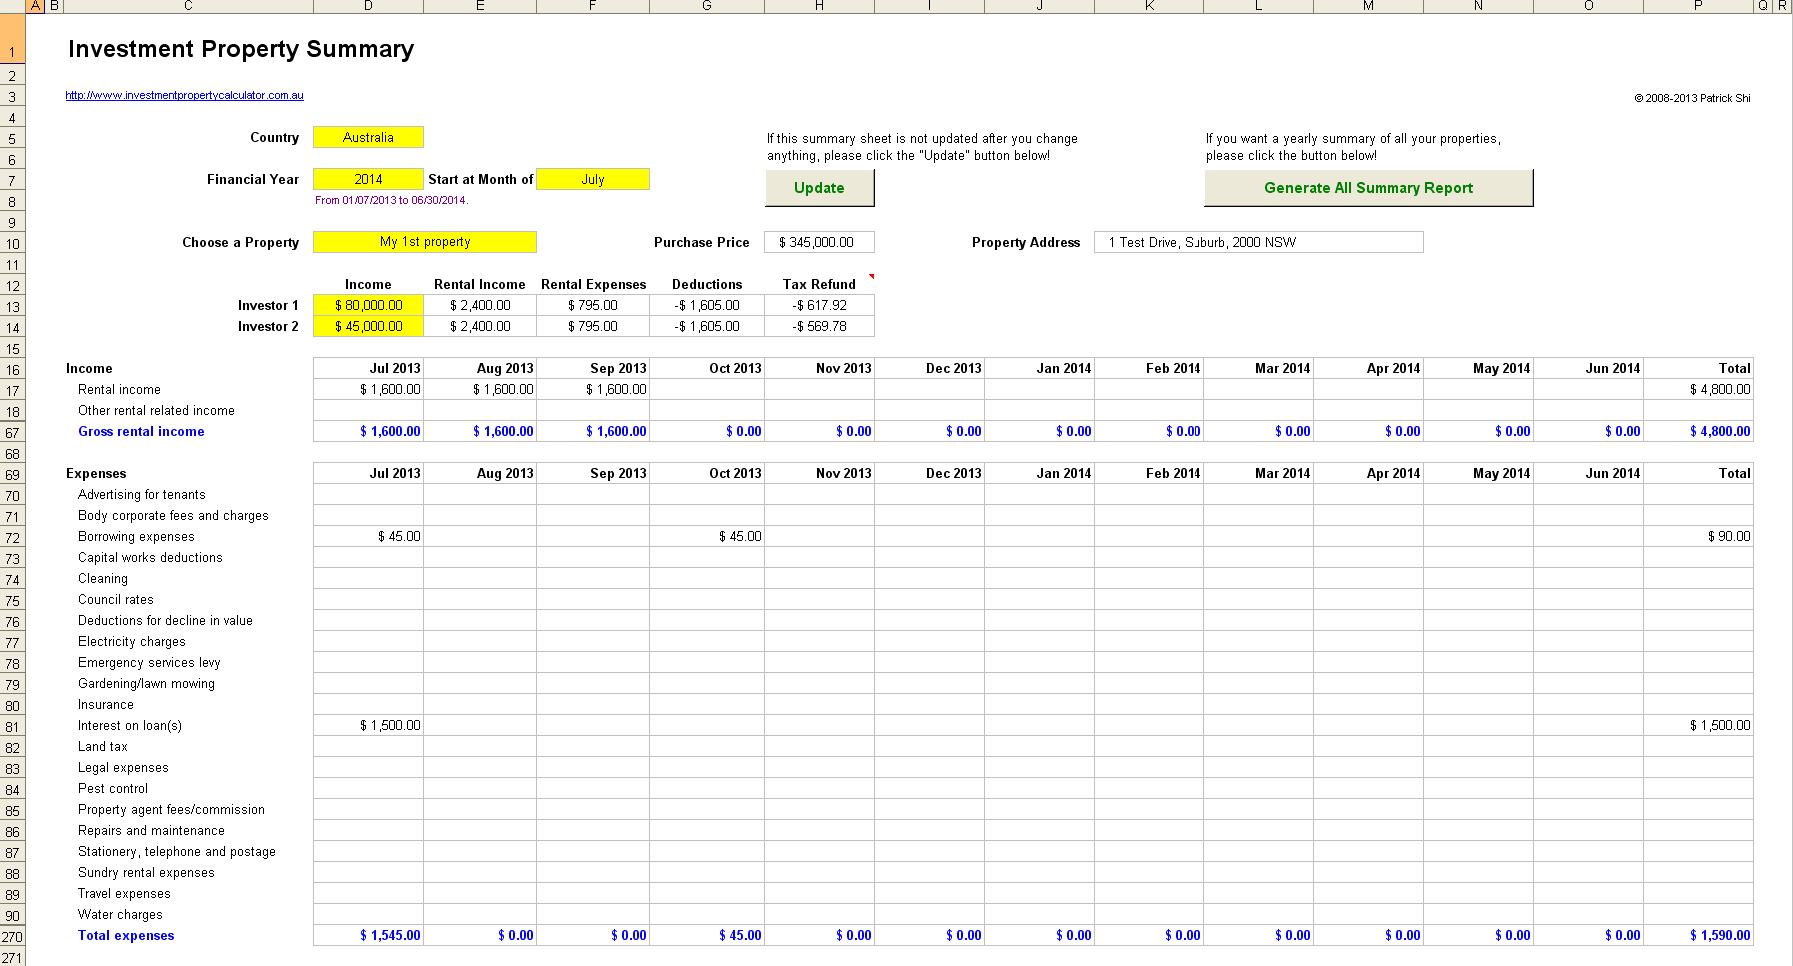 Excel Spreadsheet For Landlords For Landlord Expense Spreadsheet Excel Free Papill On Template For